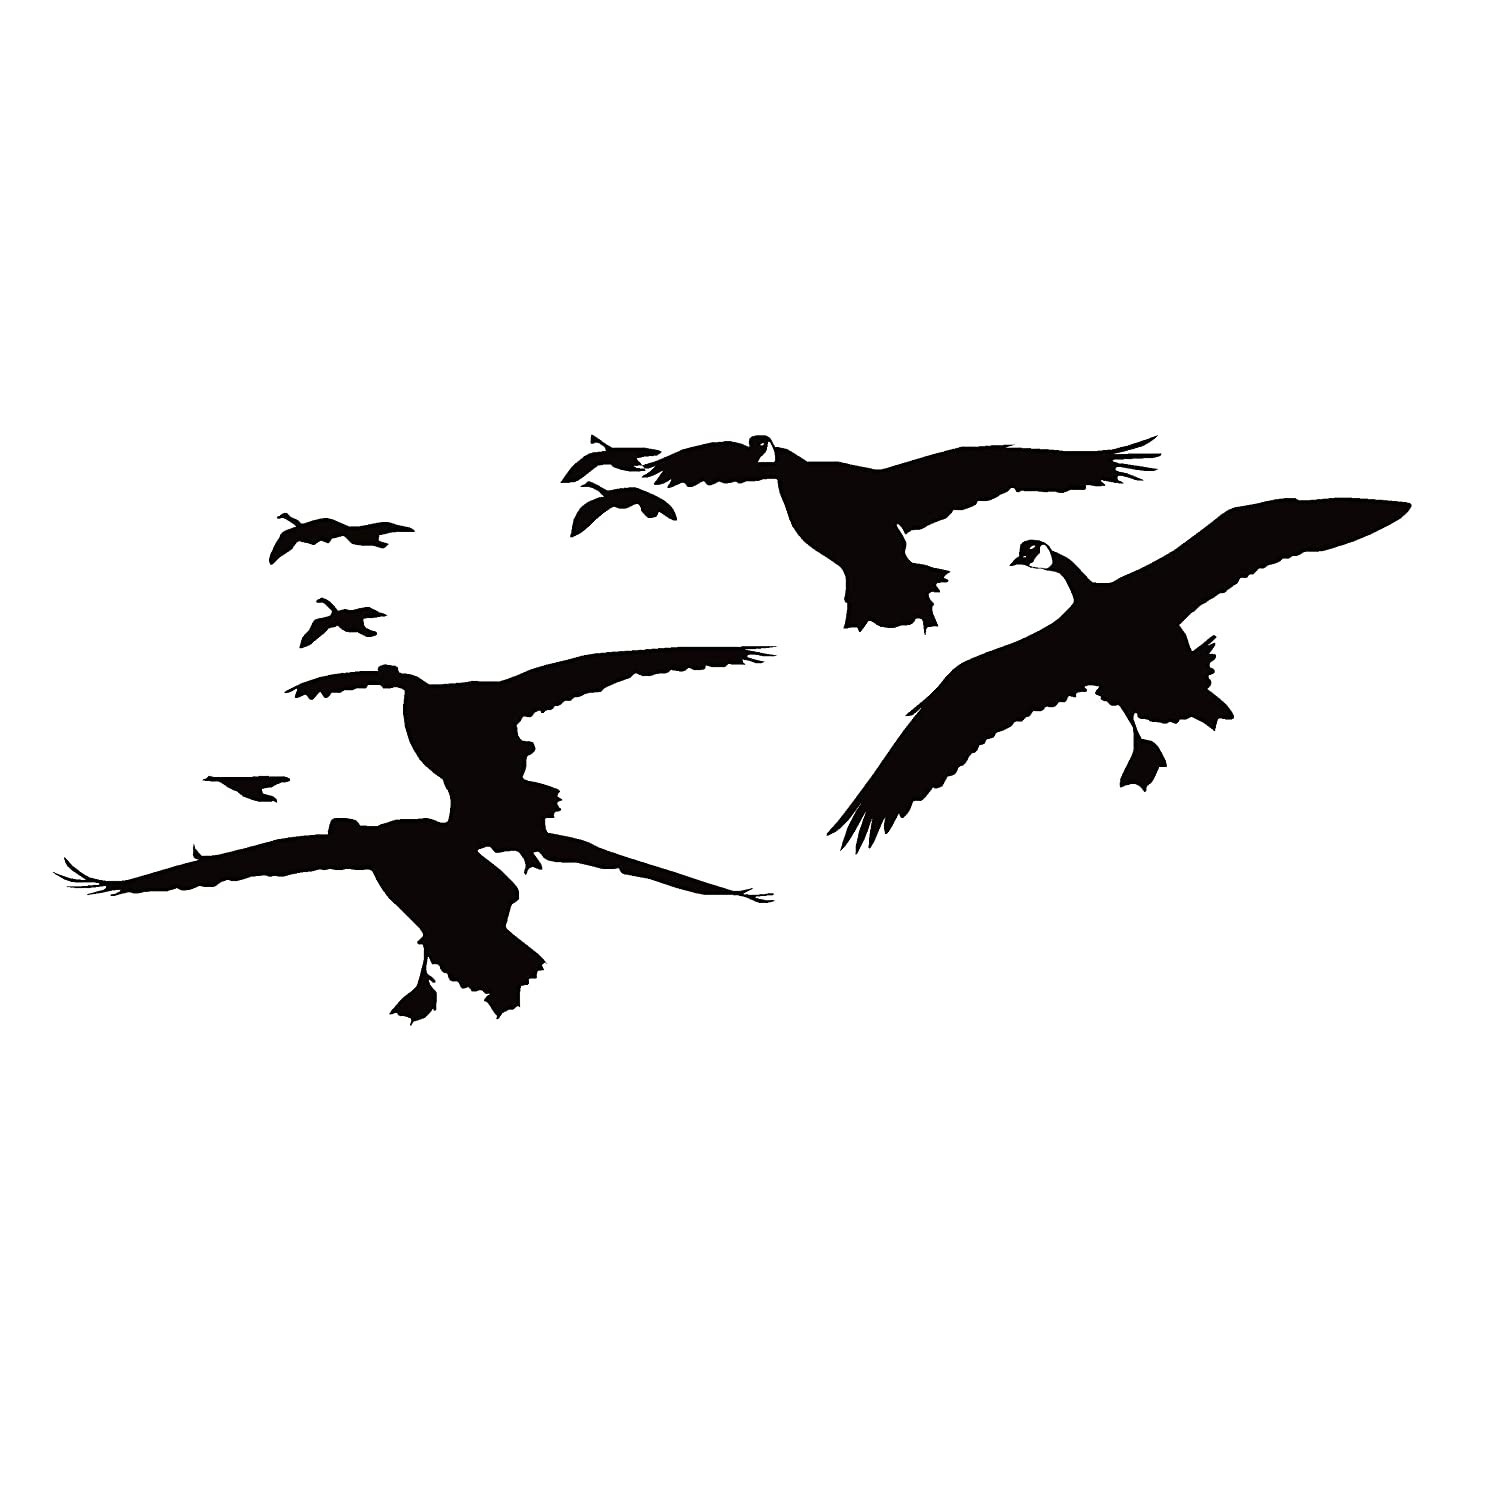 Amazon com goose hunting decal flock of geese decal goose hunting sticker snow goose hunting gear 7076 by waterfowldecals medium silver metallic